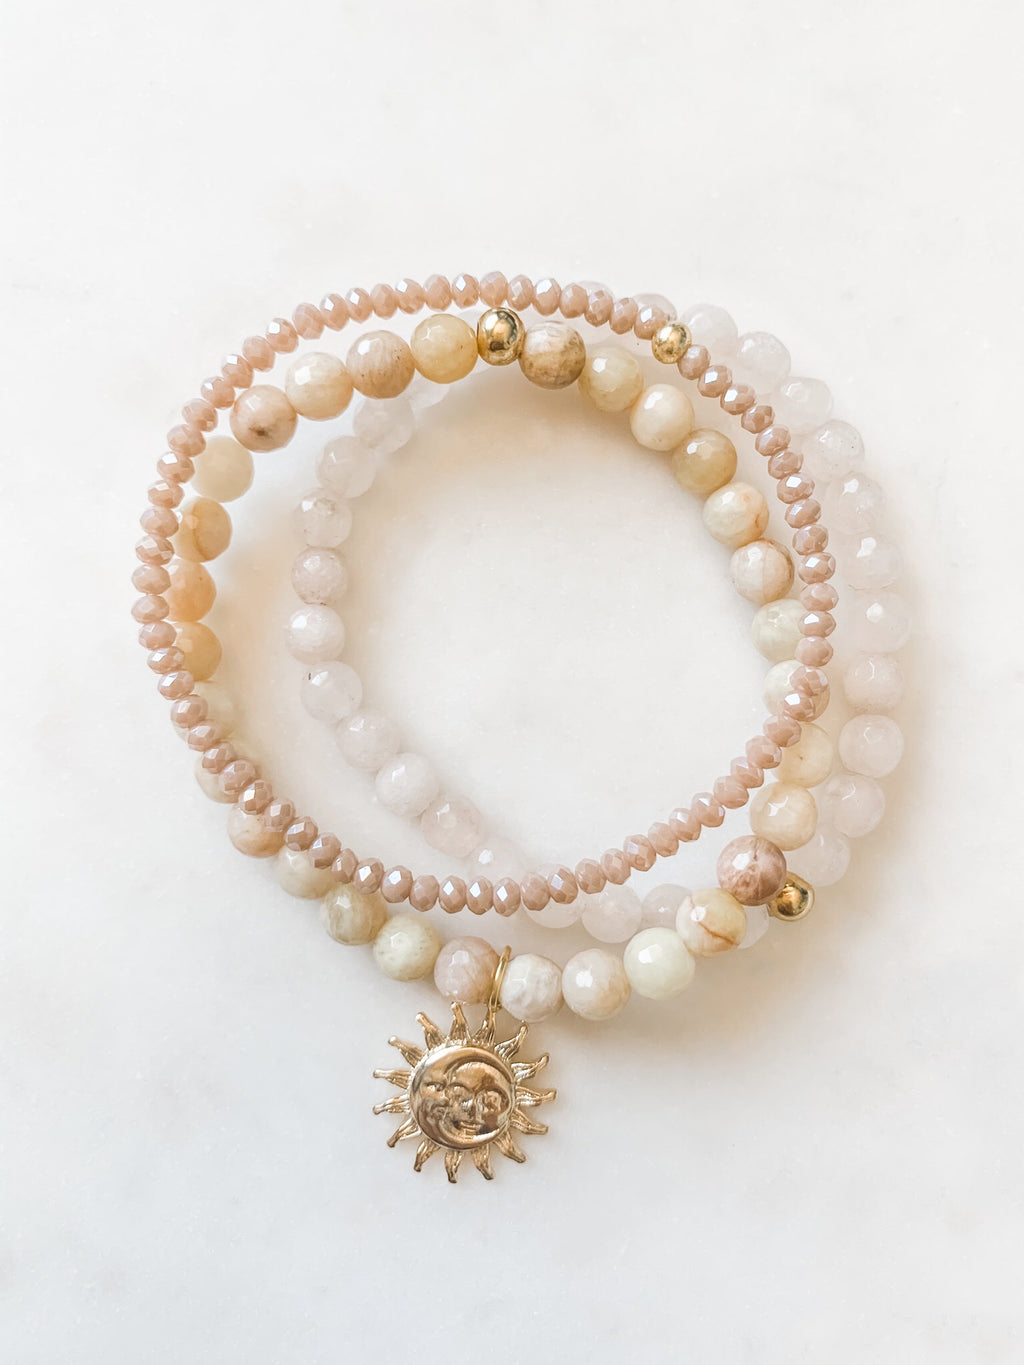 Golden Sunset Bracelet Set - The Pretty Eclectic